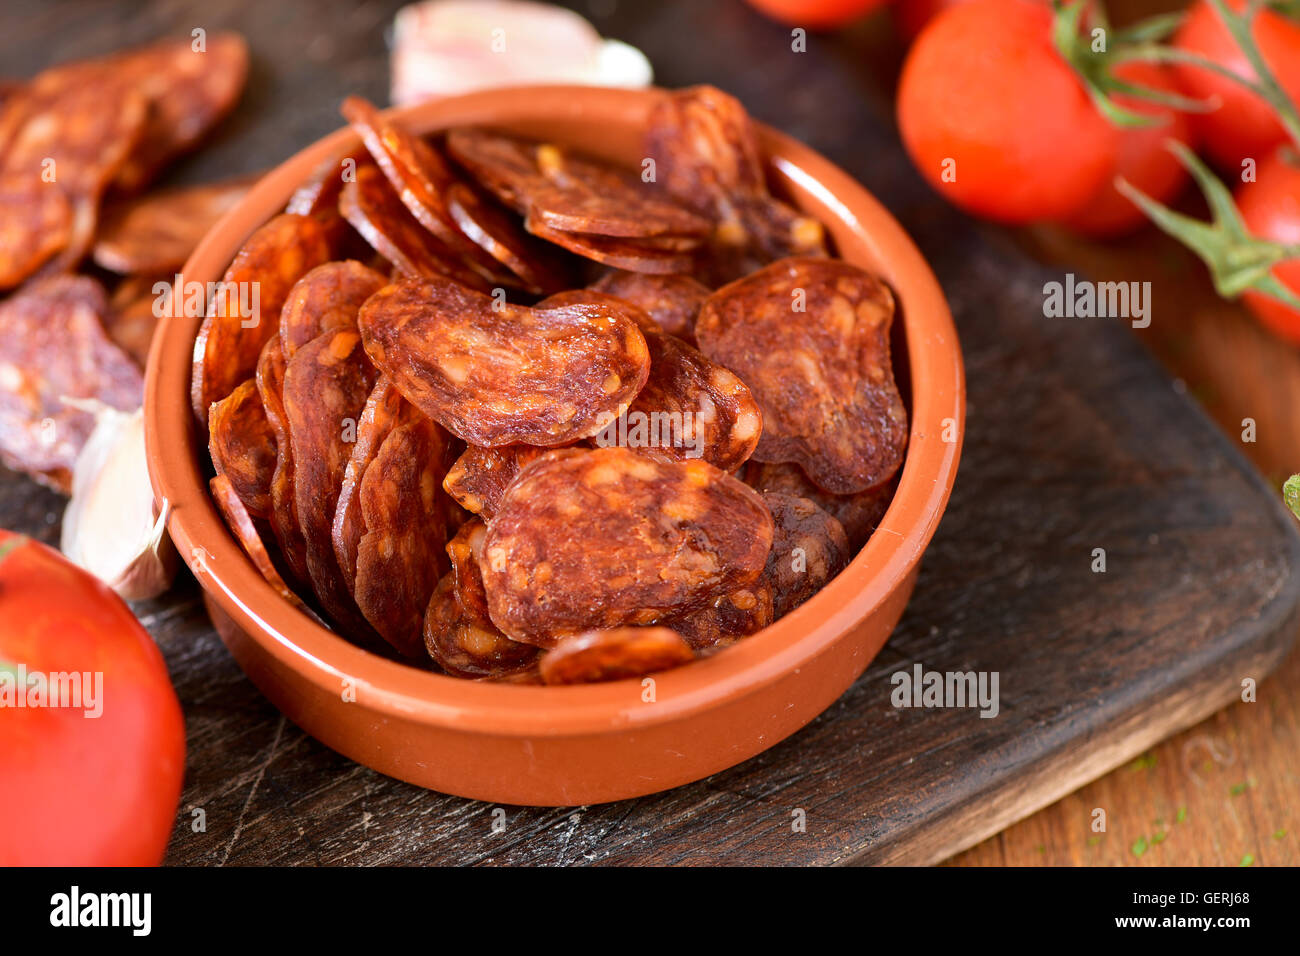 closeup of an earthenware bowl with some slices of Spanish chorizo, a pork sausage typical of Spain, on a rustic Stock Photo